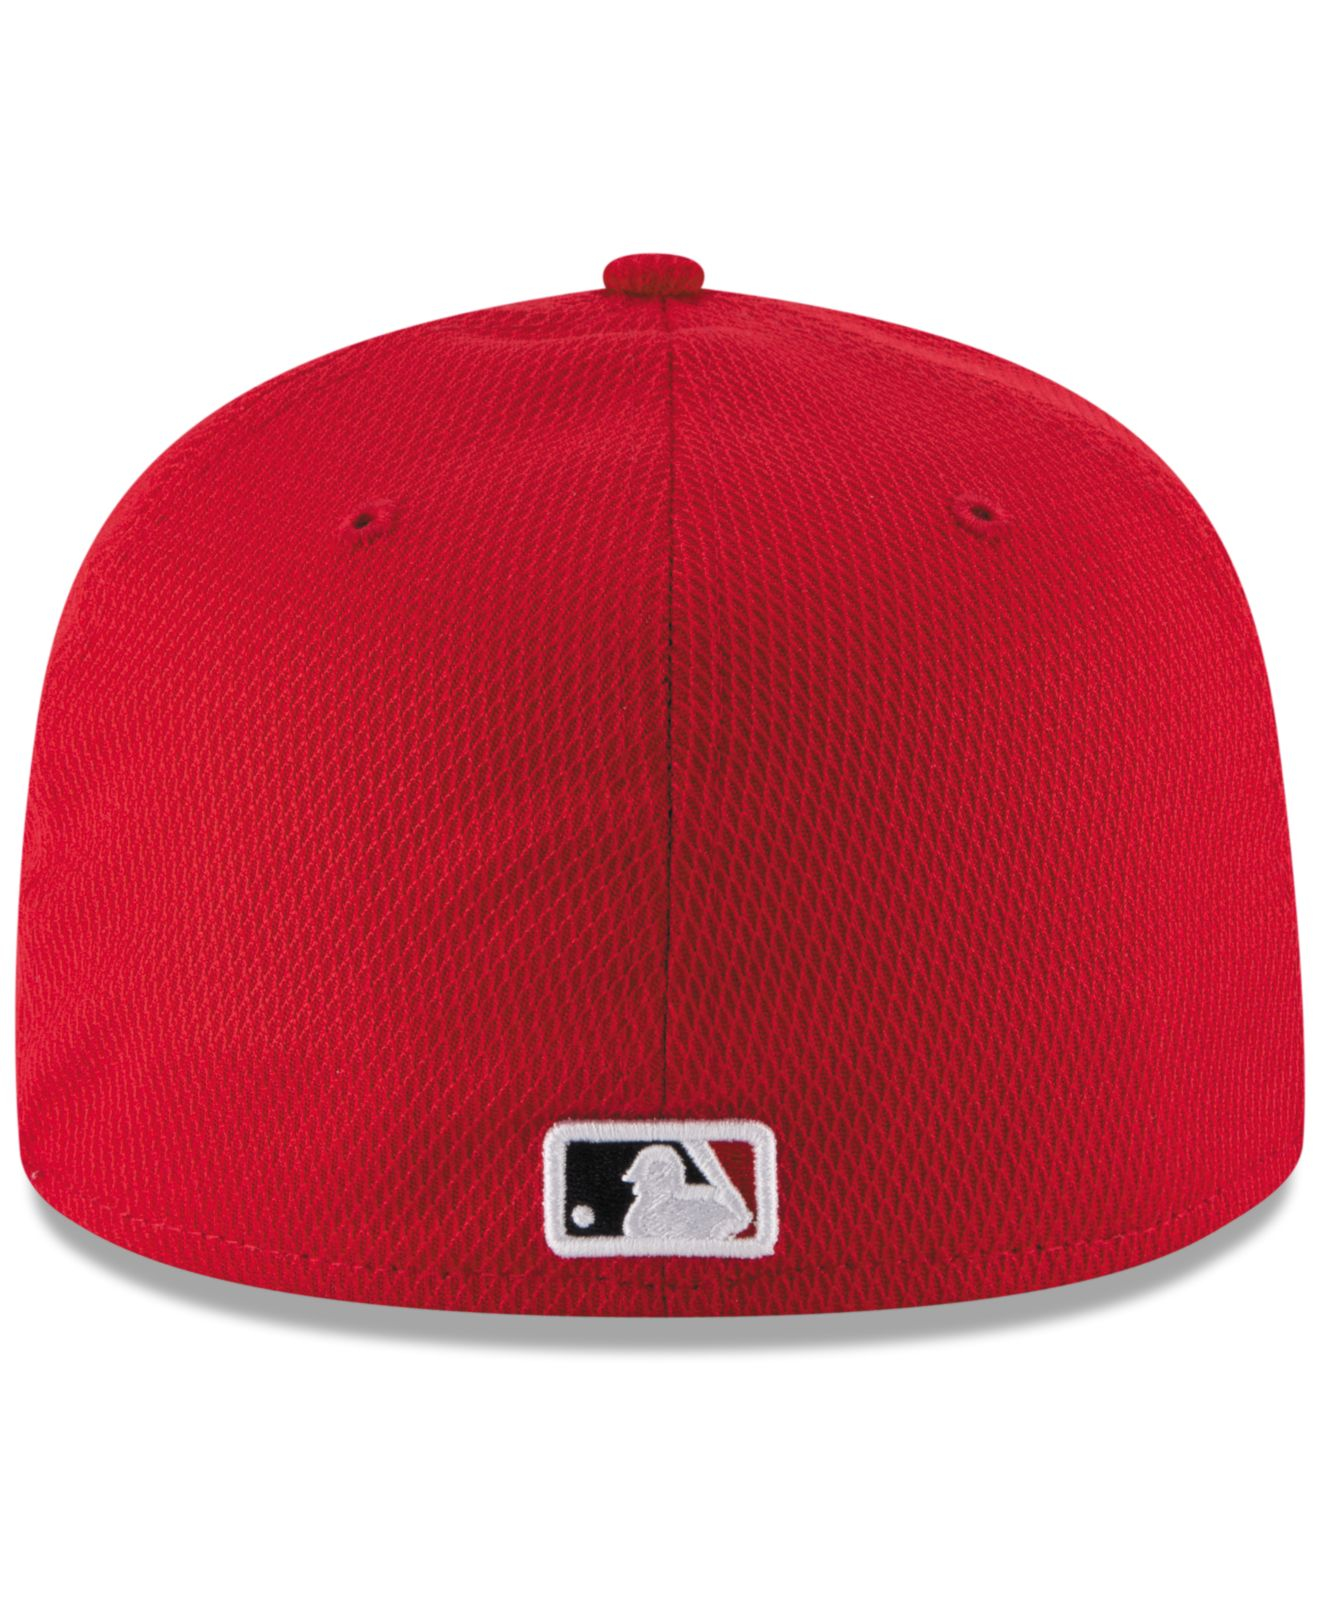 low priced dc939 35720 Lyst - KTZ St. Louis Cardinals Diamond Era 59fifty Cap in Red for Men